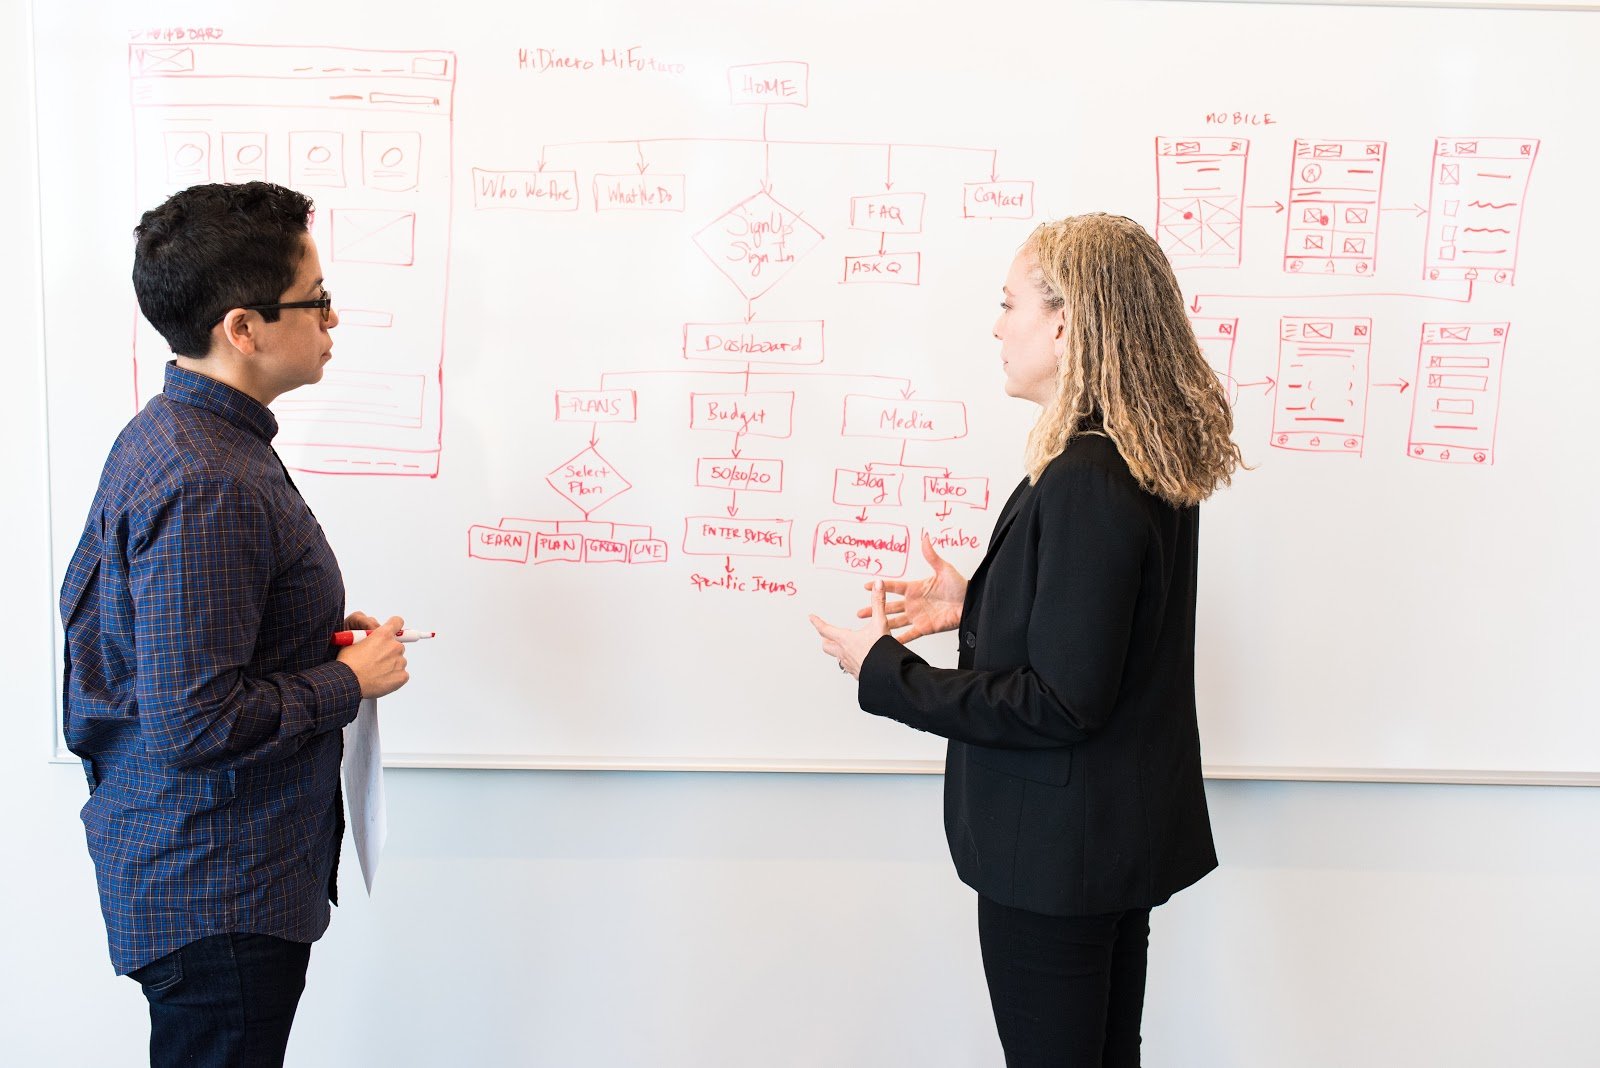 Two people discuss a website interface, architecture and user flow on a whiteboard.